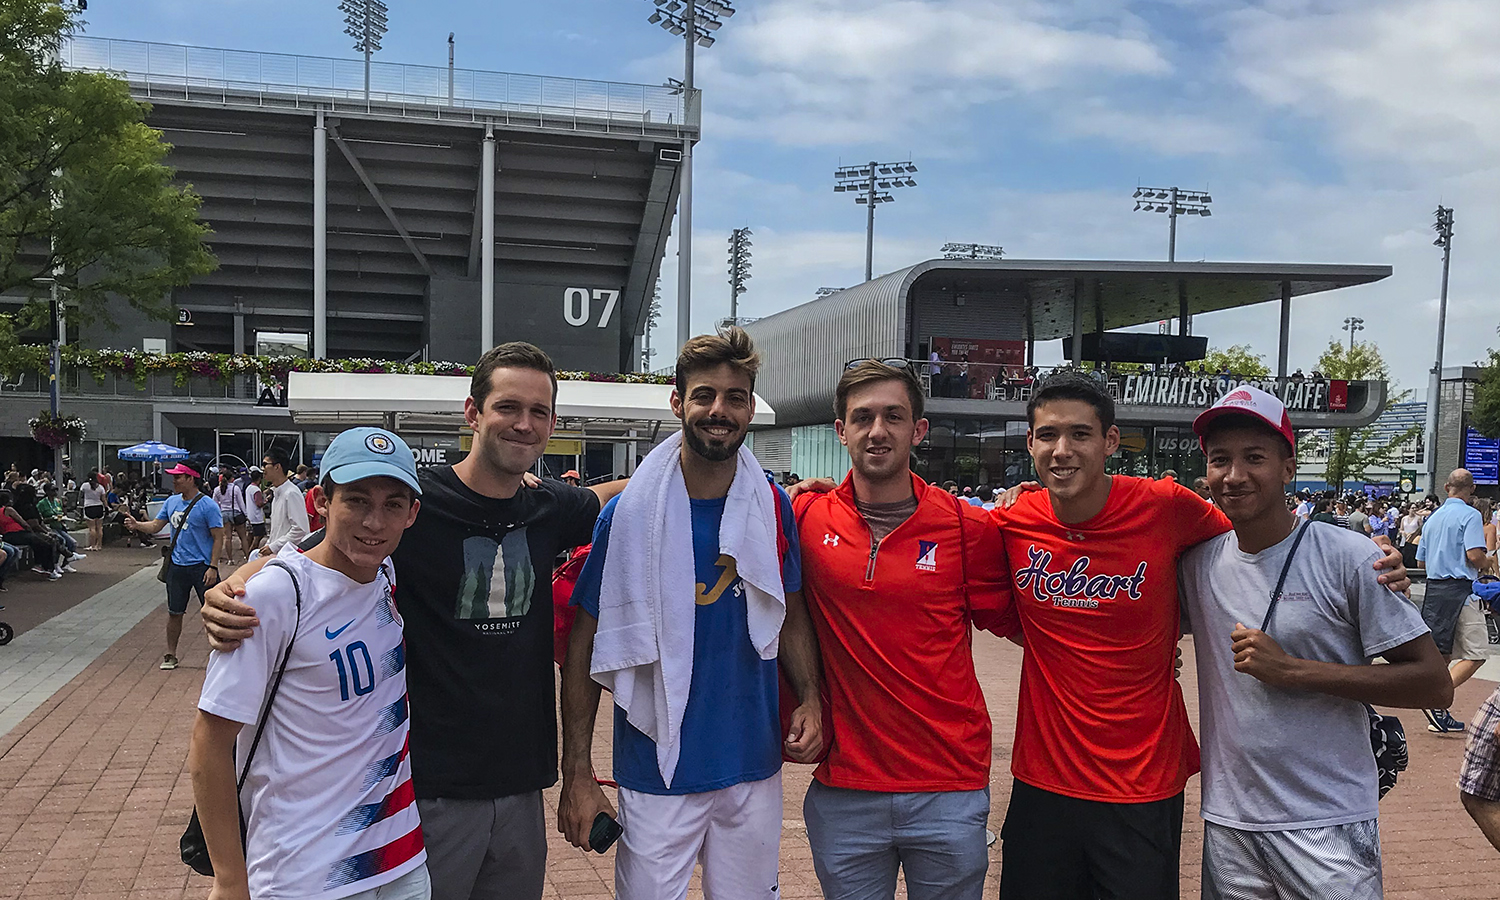 Adam Farid '20, Joe Mallon '20, Alan Dubrovsky '20, Thomas Shung '22 and Jonathan Atwater '19 pose for a photo with Professional Tennis Player Marcel Granollers (center) during a visit to the U.S. Open Tournament.